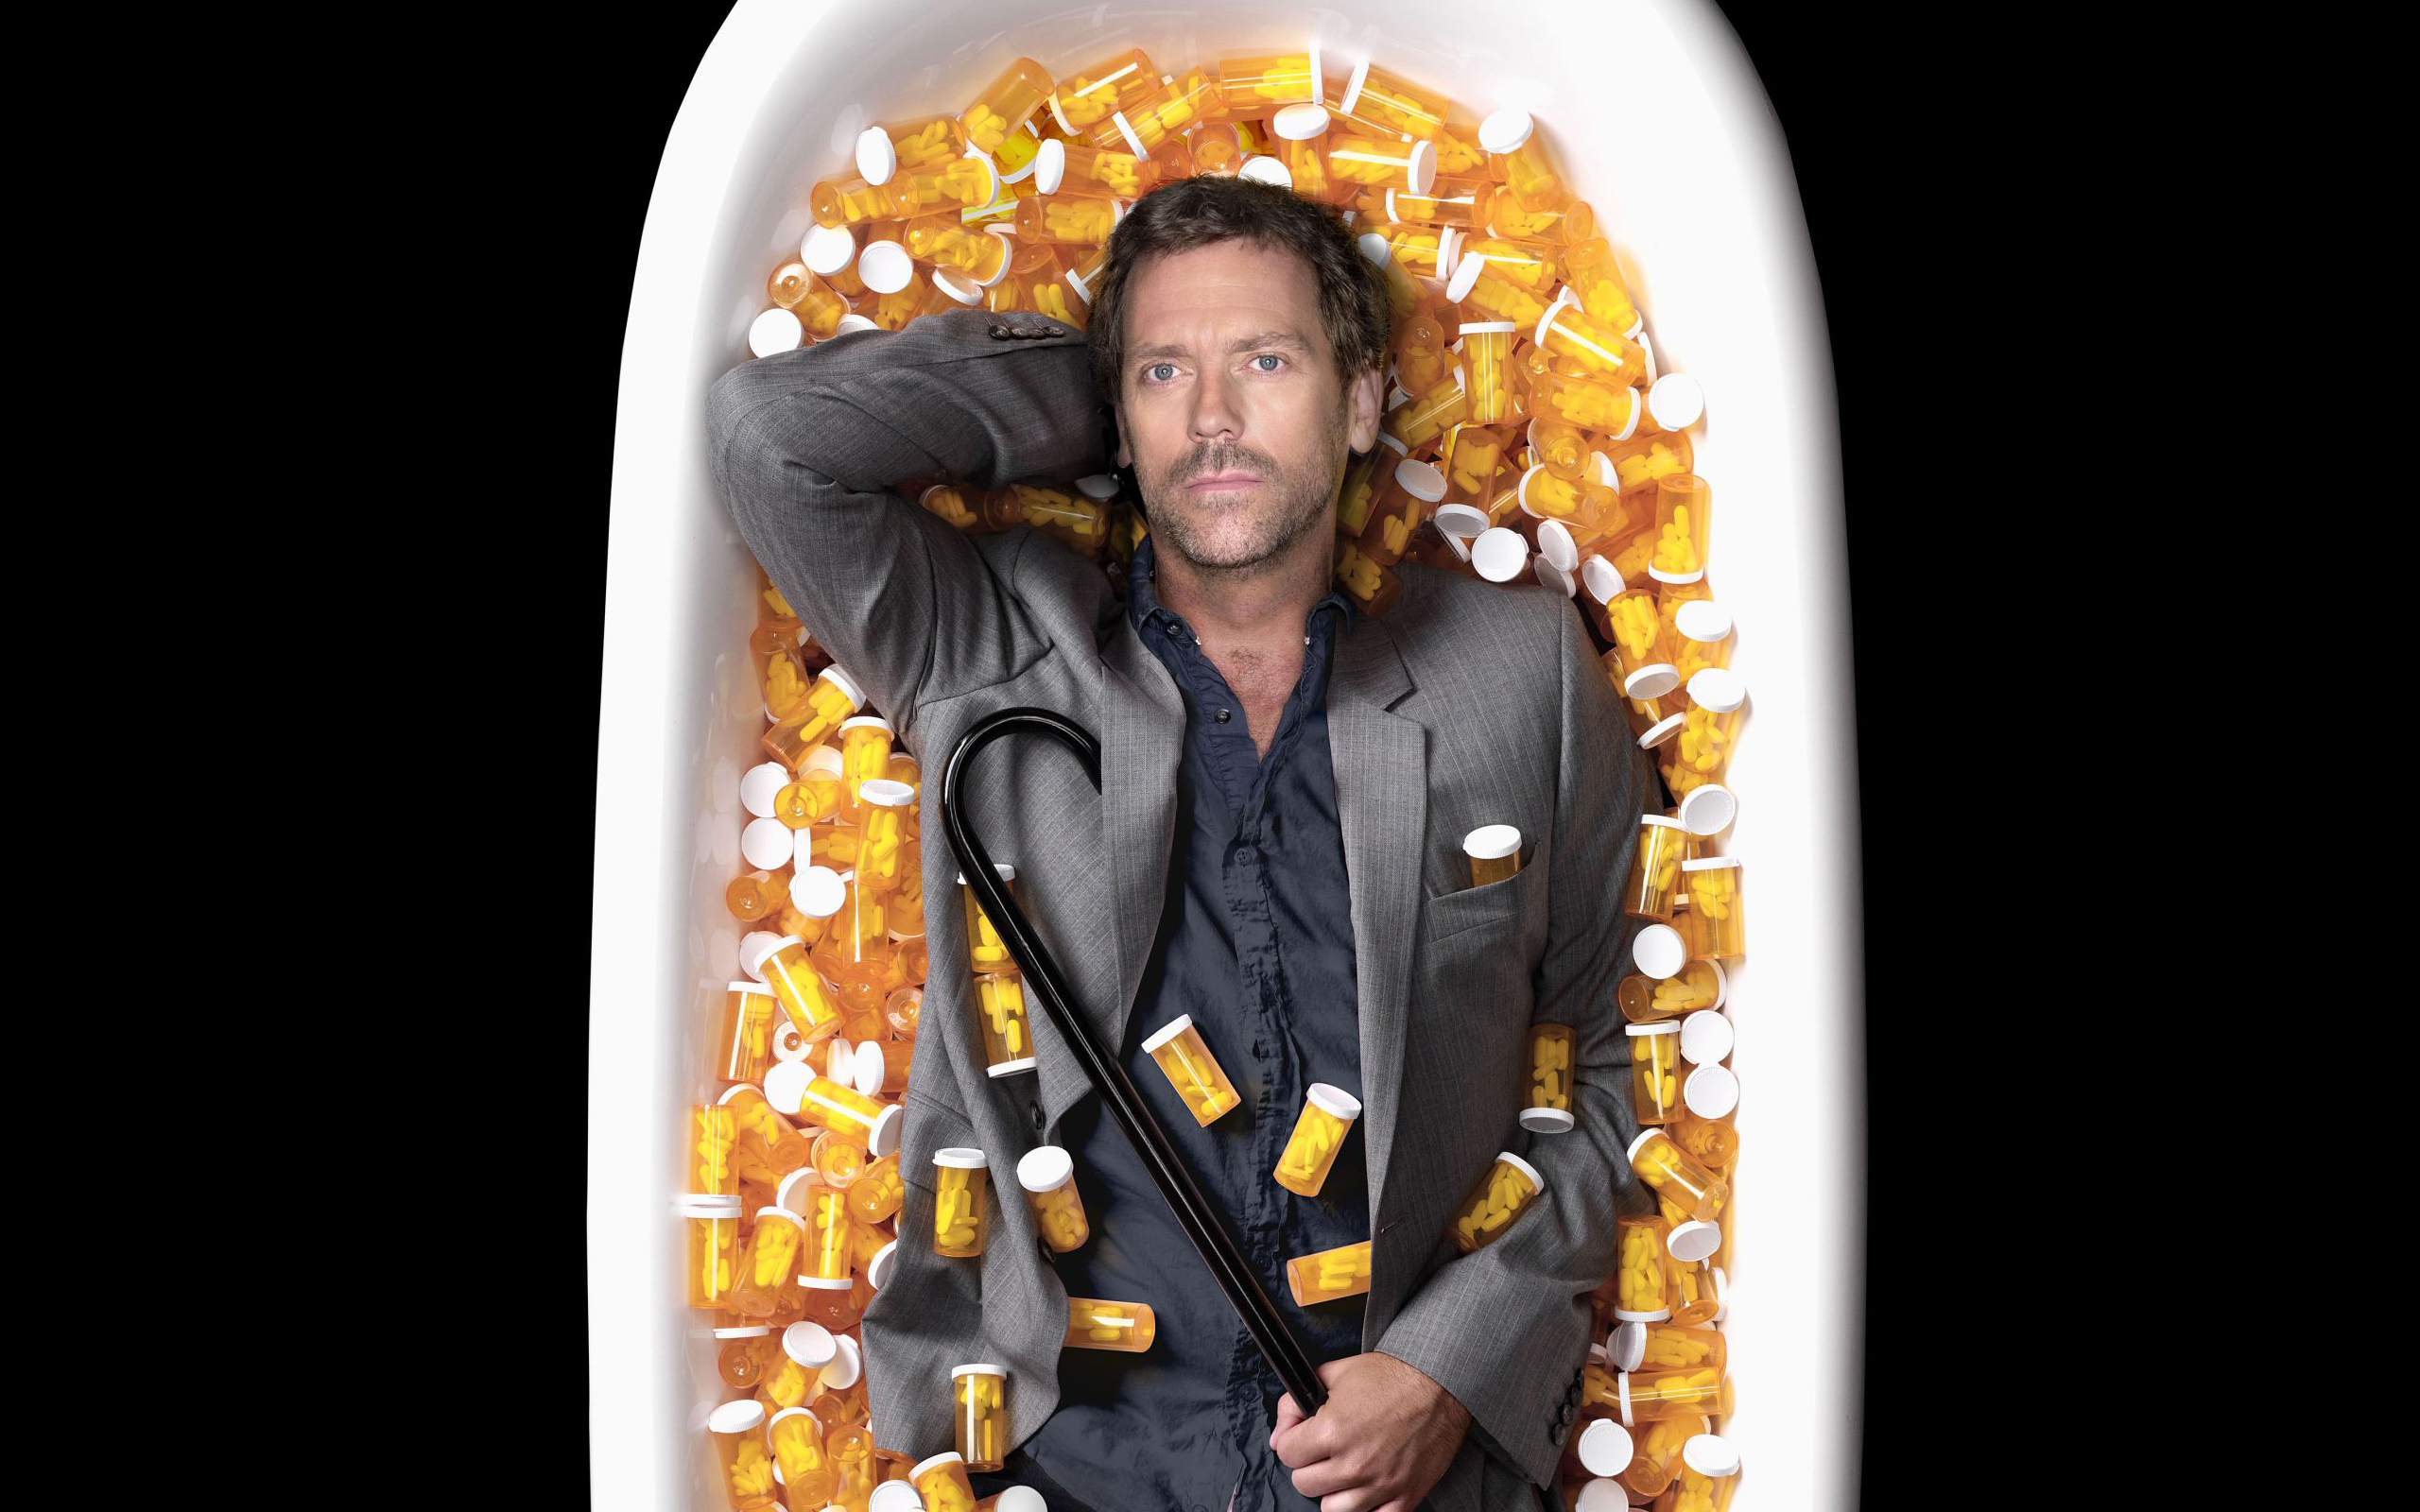 Hugh Laurie Gregory House pills vicodin doctor House MD 2560x1600